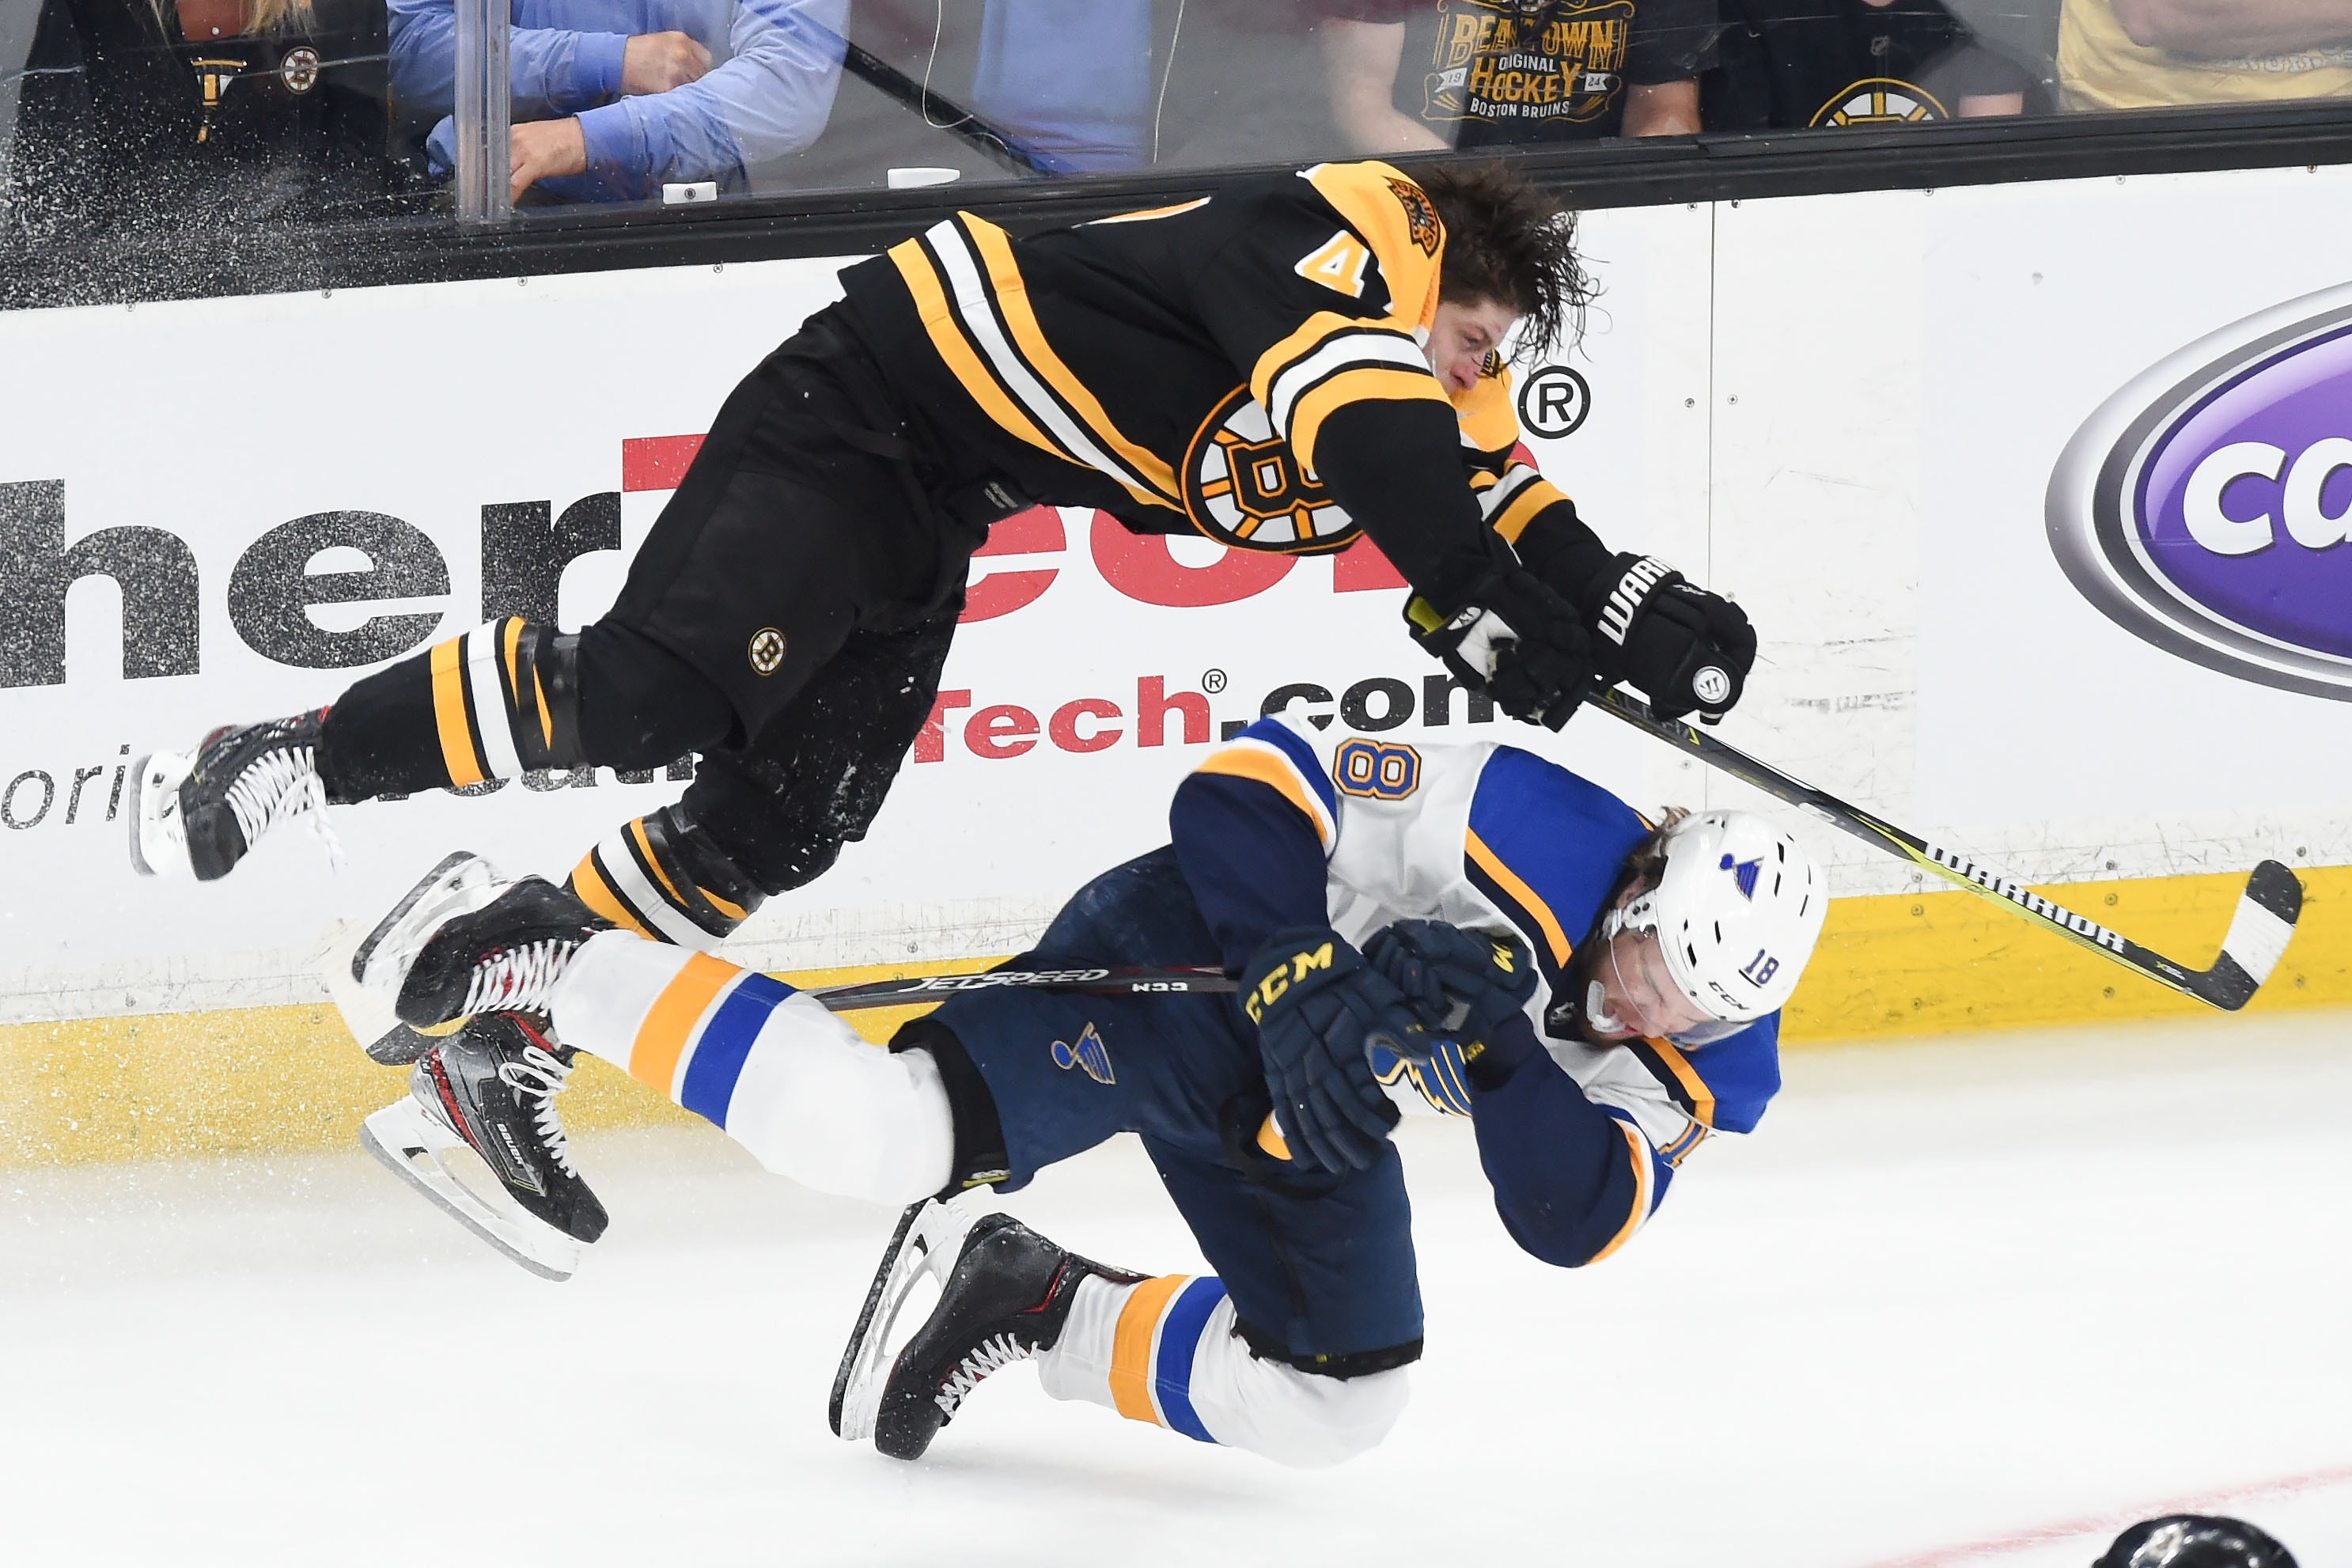 Louis Blues vs. Boston Bruins 5/29/19, Prediction & Odds